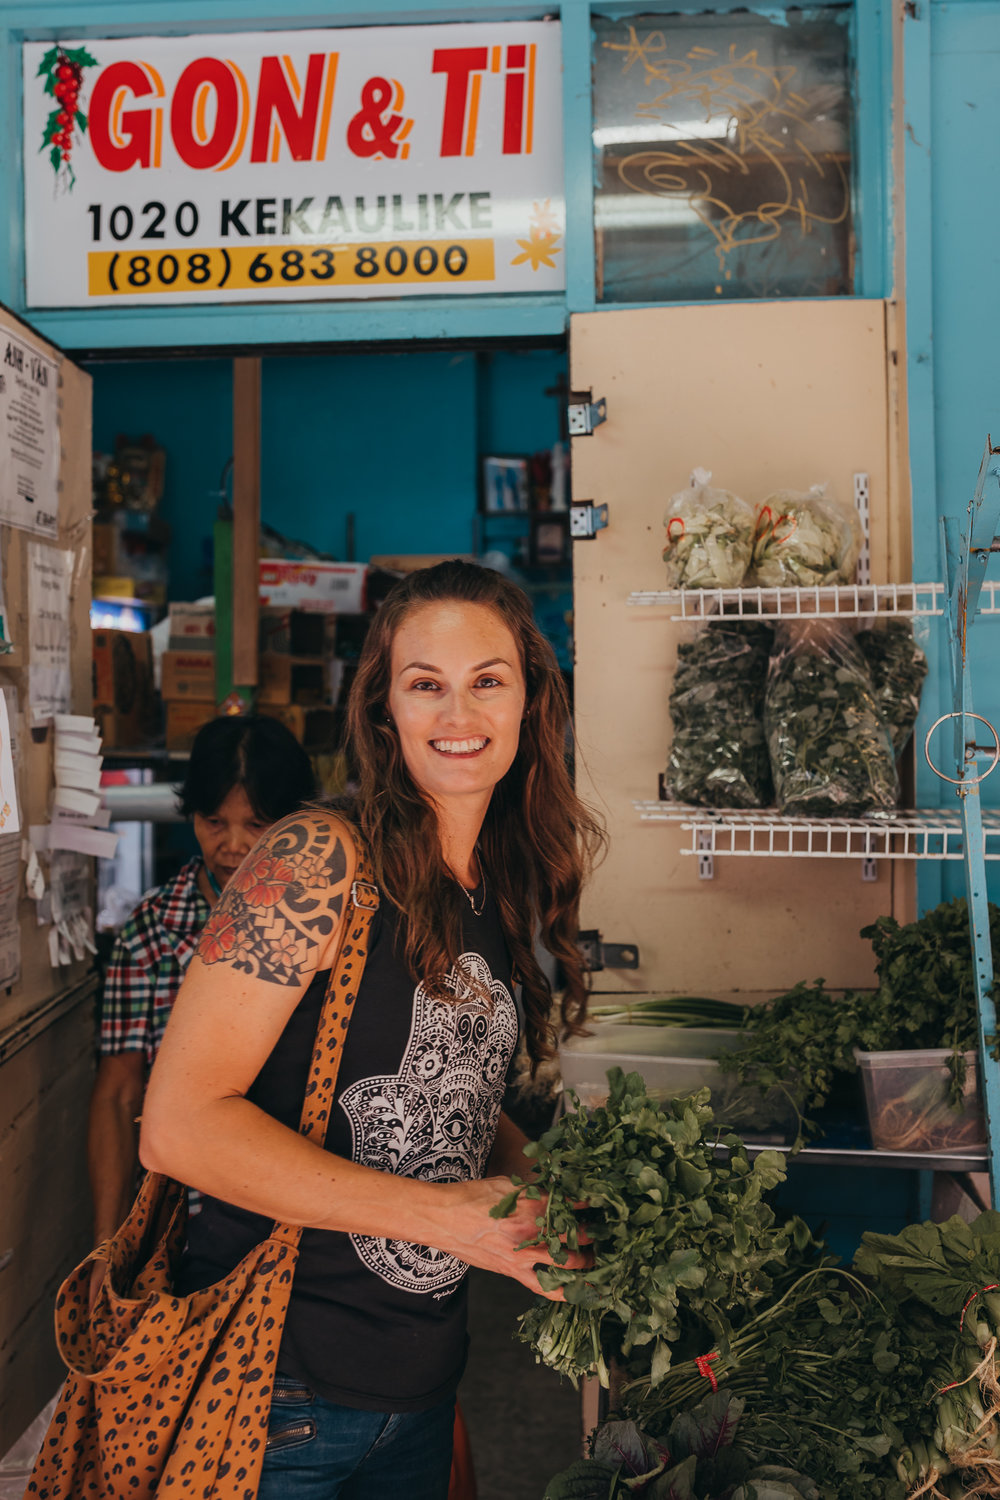 Meet Chef Sarah, the owner of The HealthyLocavore blog and a recent Hawaii transplant from the Bay Area -